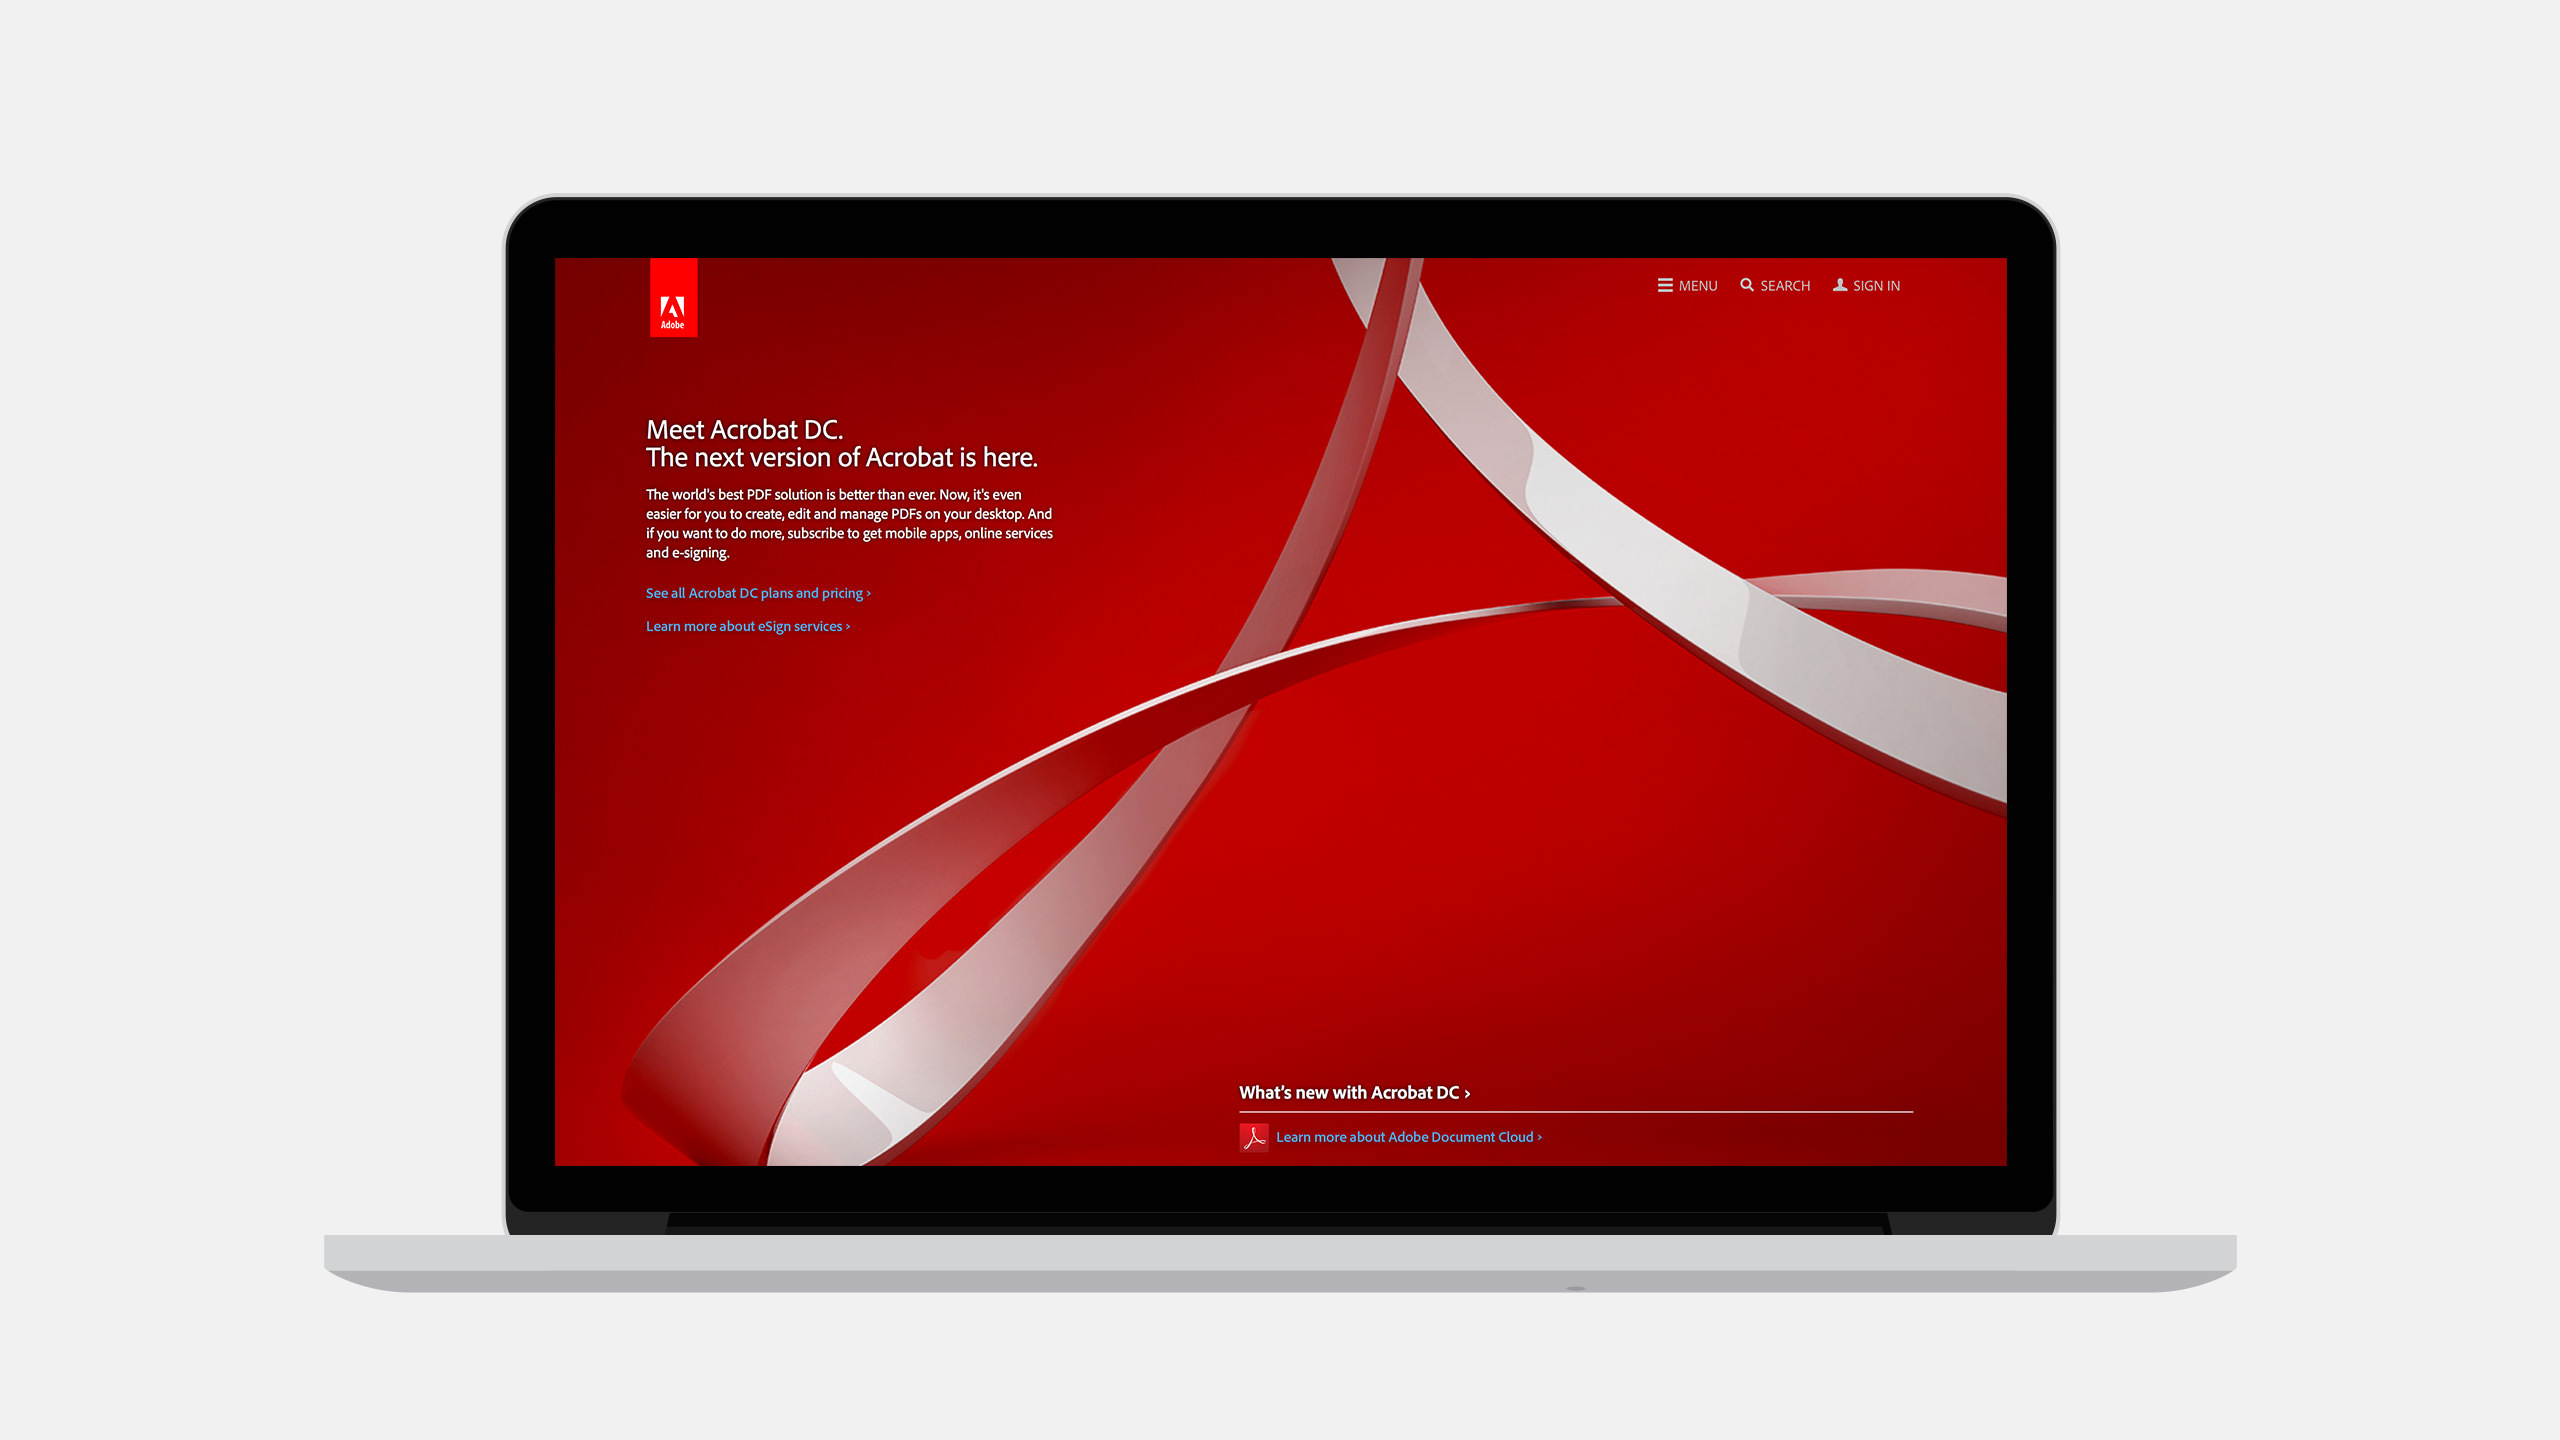 adobe acrobat products